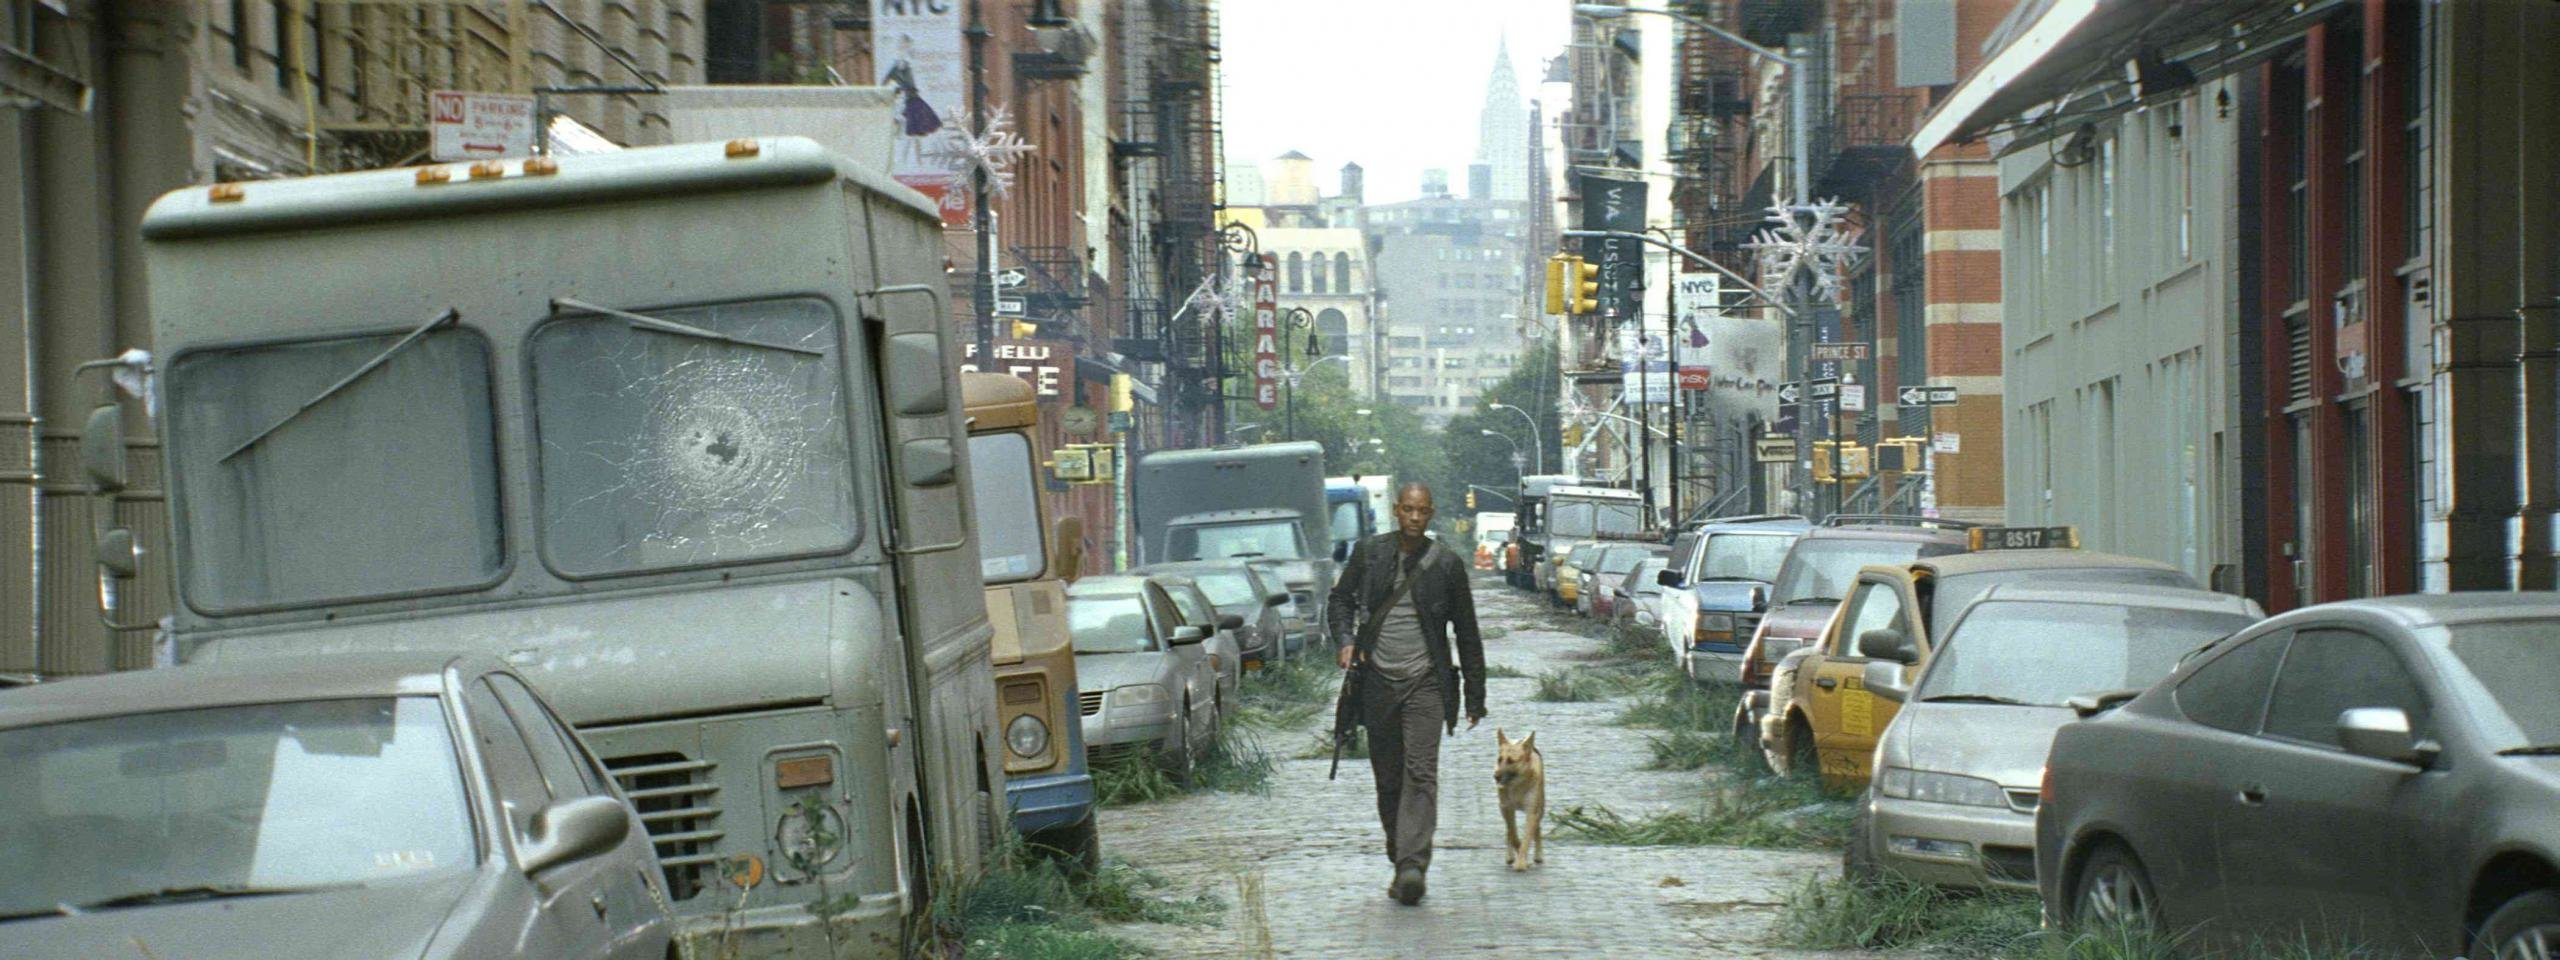 Download dual screen 2560x960 I Am Legend PC background ID:321536 for free